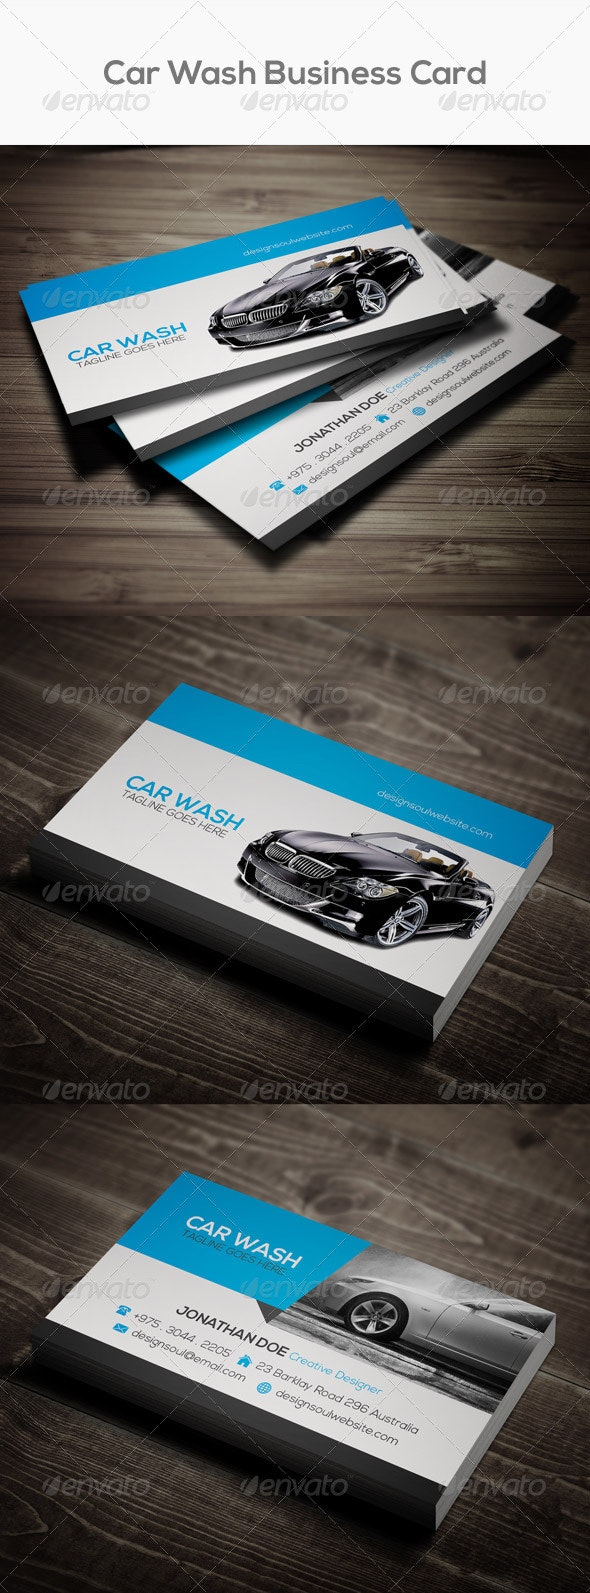 Car Wash Business Card - Industry Specific Business Cards